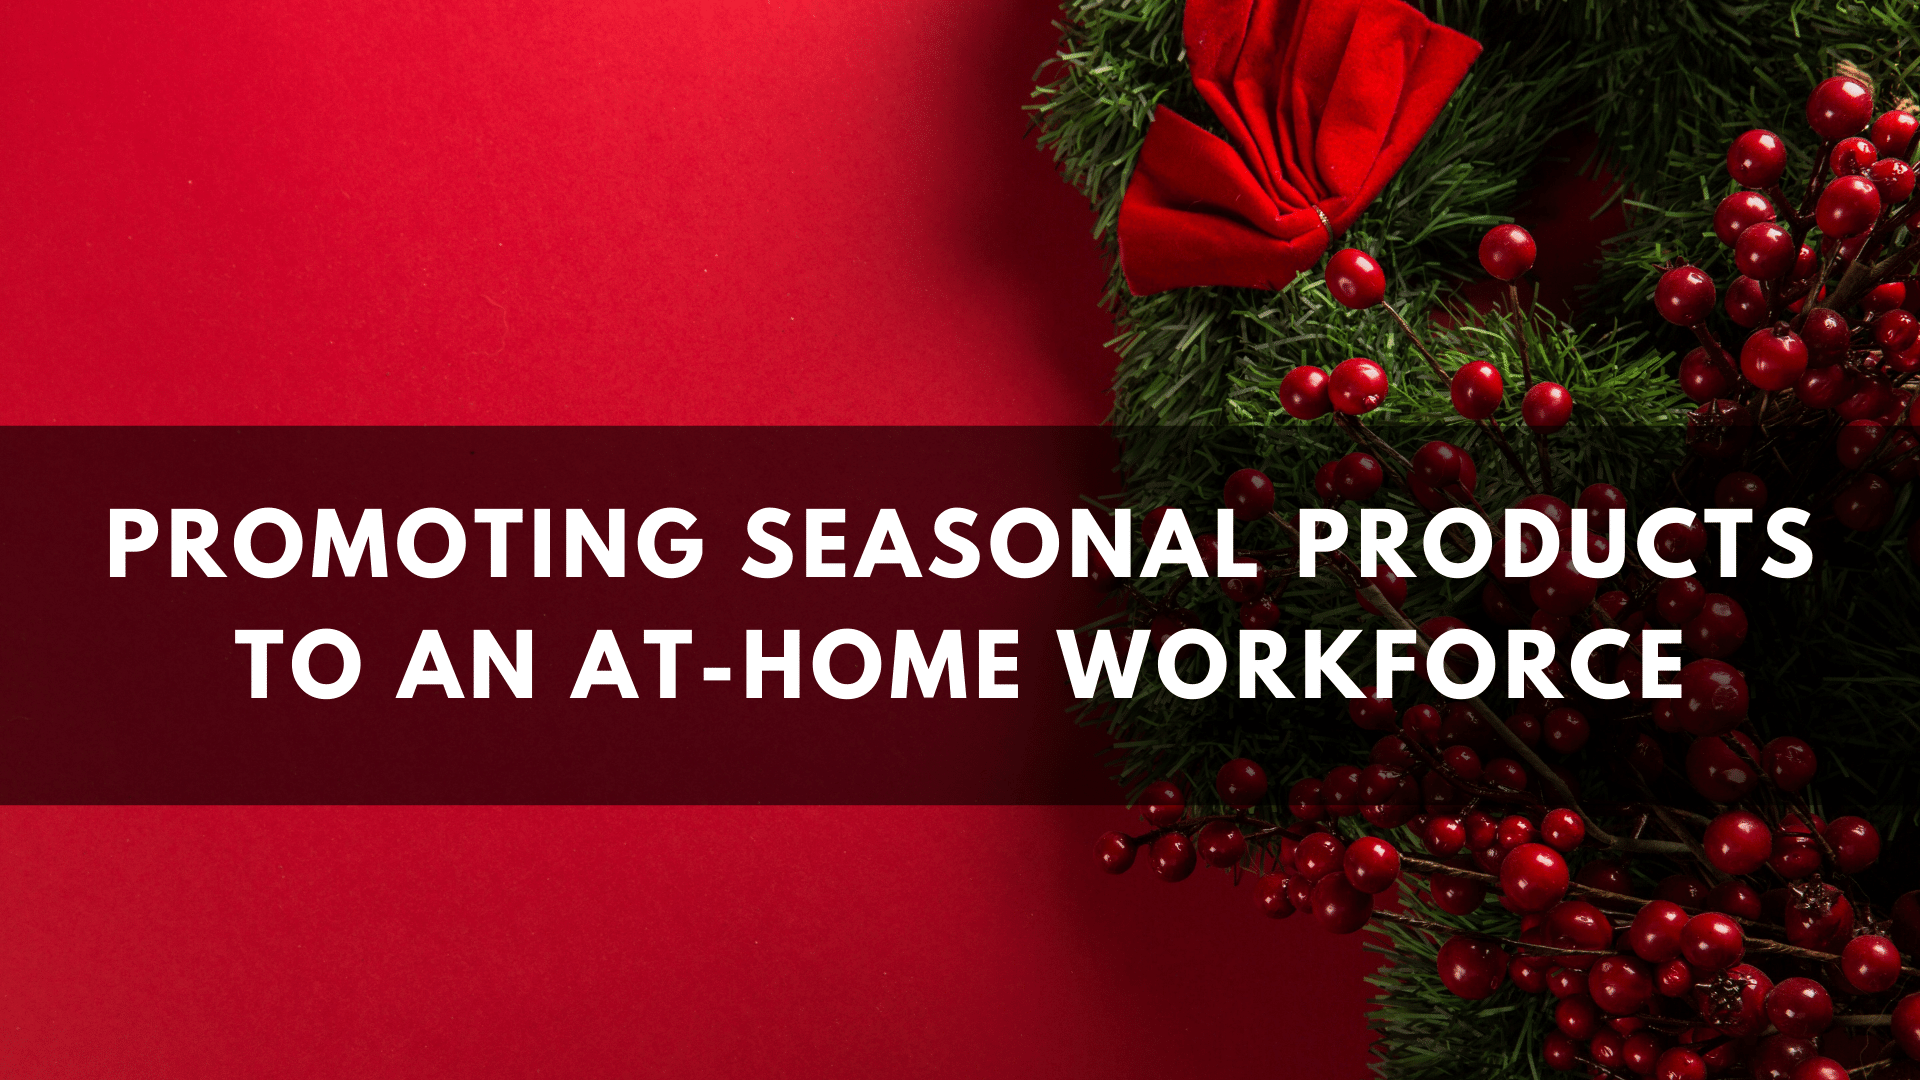 Promoting Seasonal Products to an At-Home Workforce